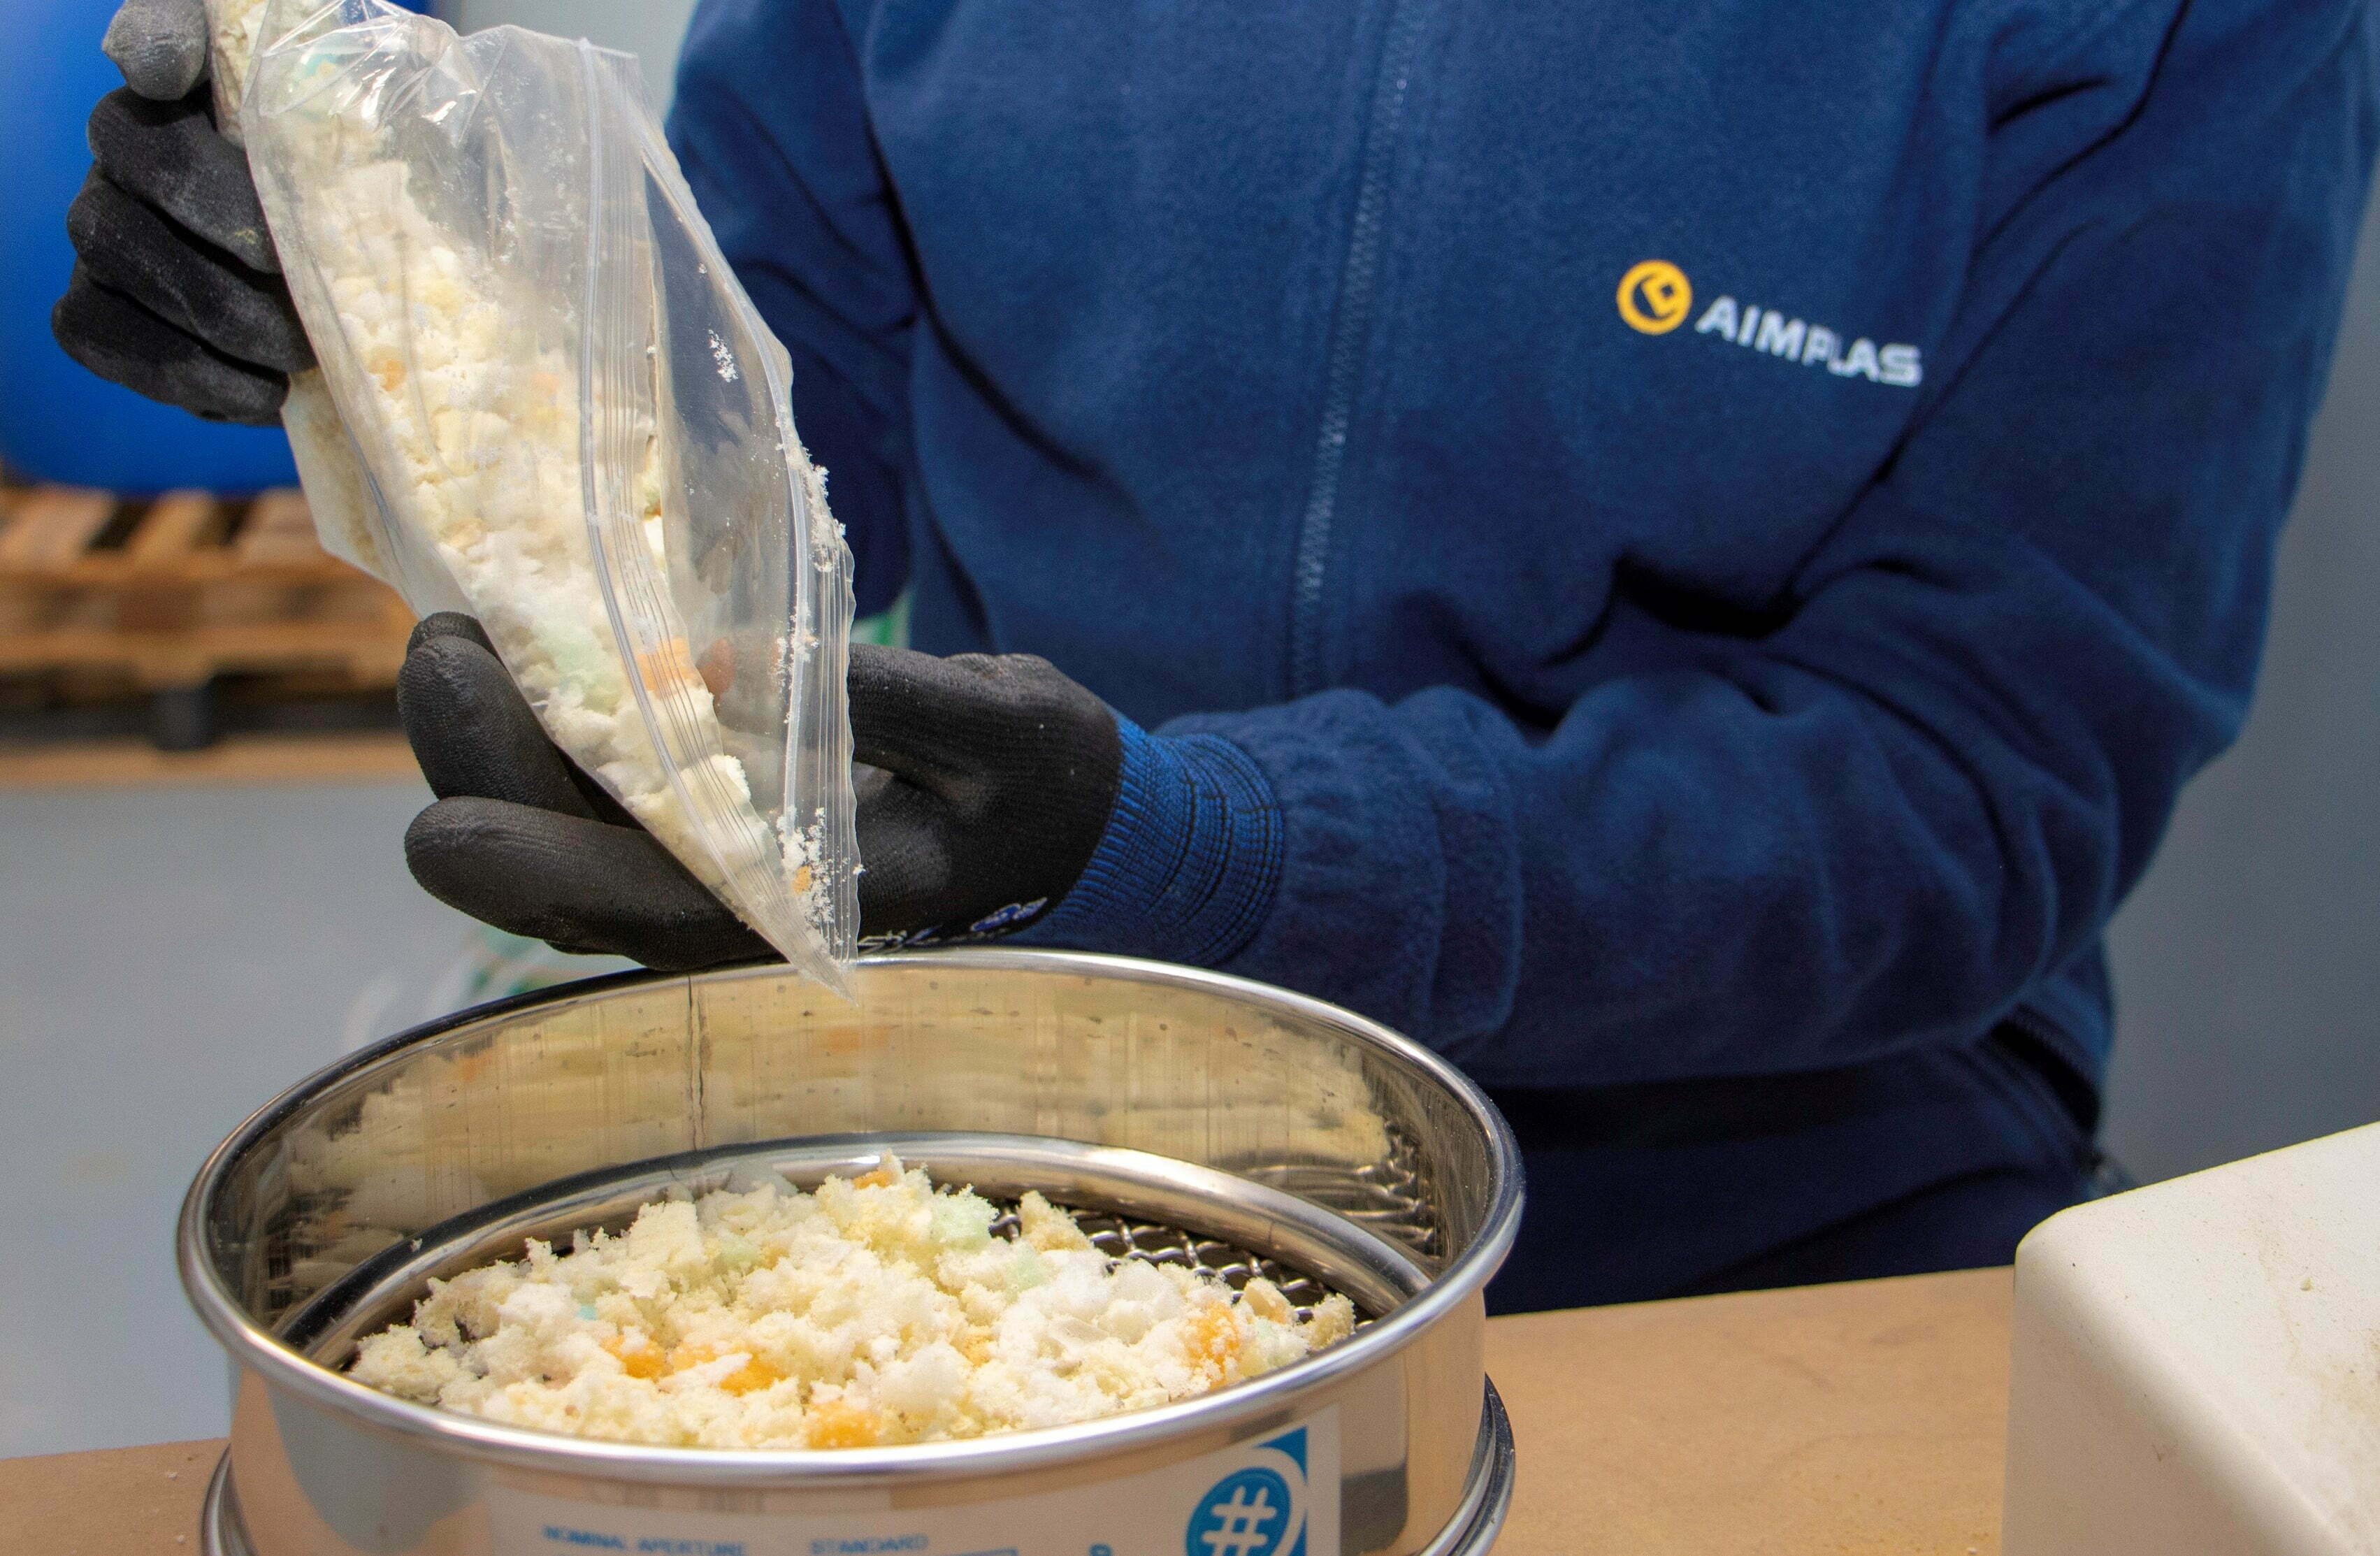 Chemical recycling to allow recovering polyurethane from landfills to use it as raw material